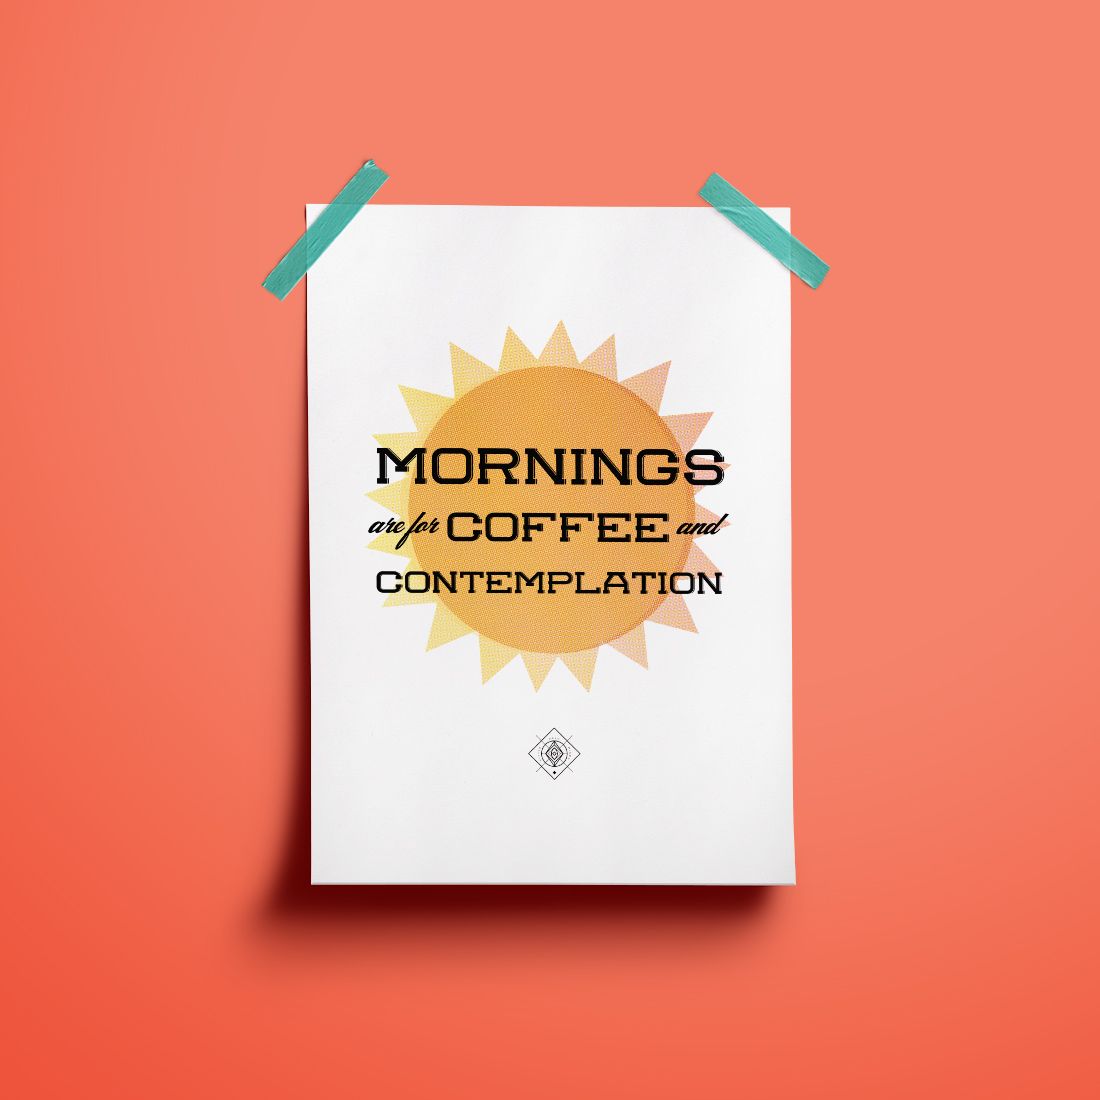 Stranger Things Free Printable Mornings Are for Coffee and Contemplation •Little Gold Pixel